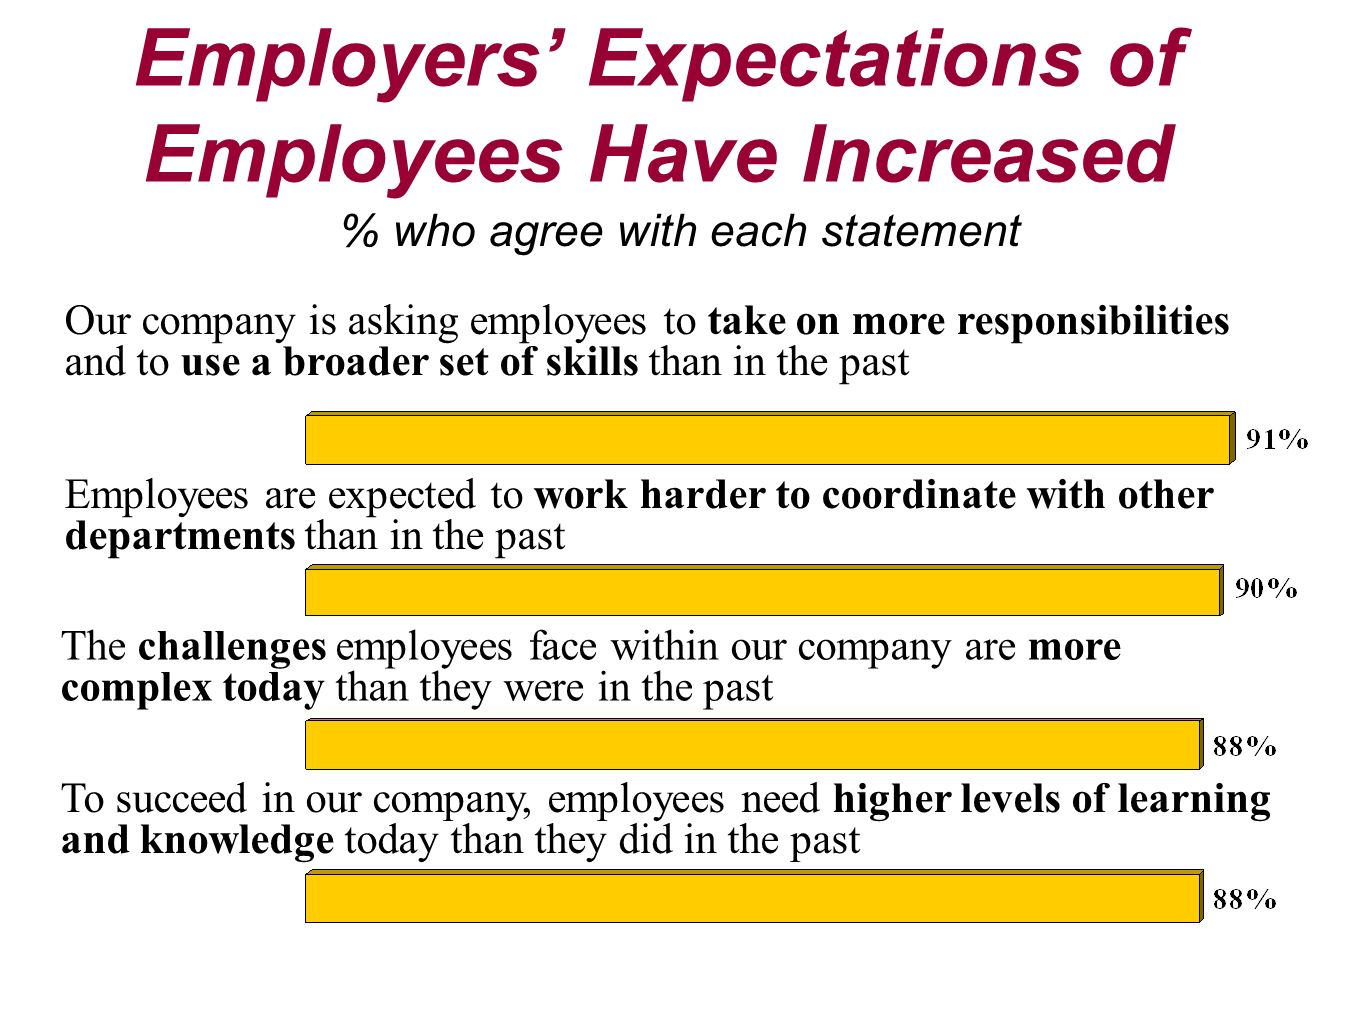 Employers' Expectations of Employees Have Increased